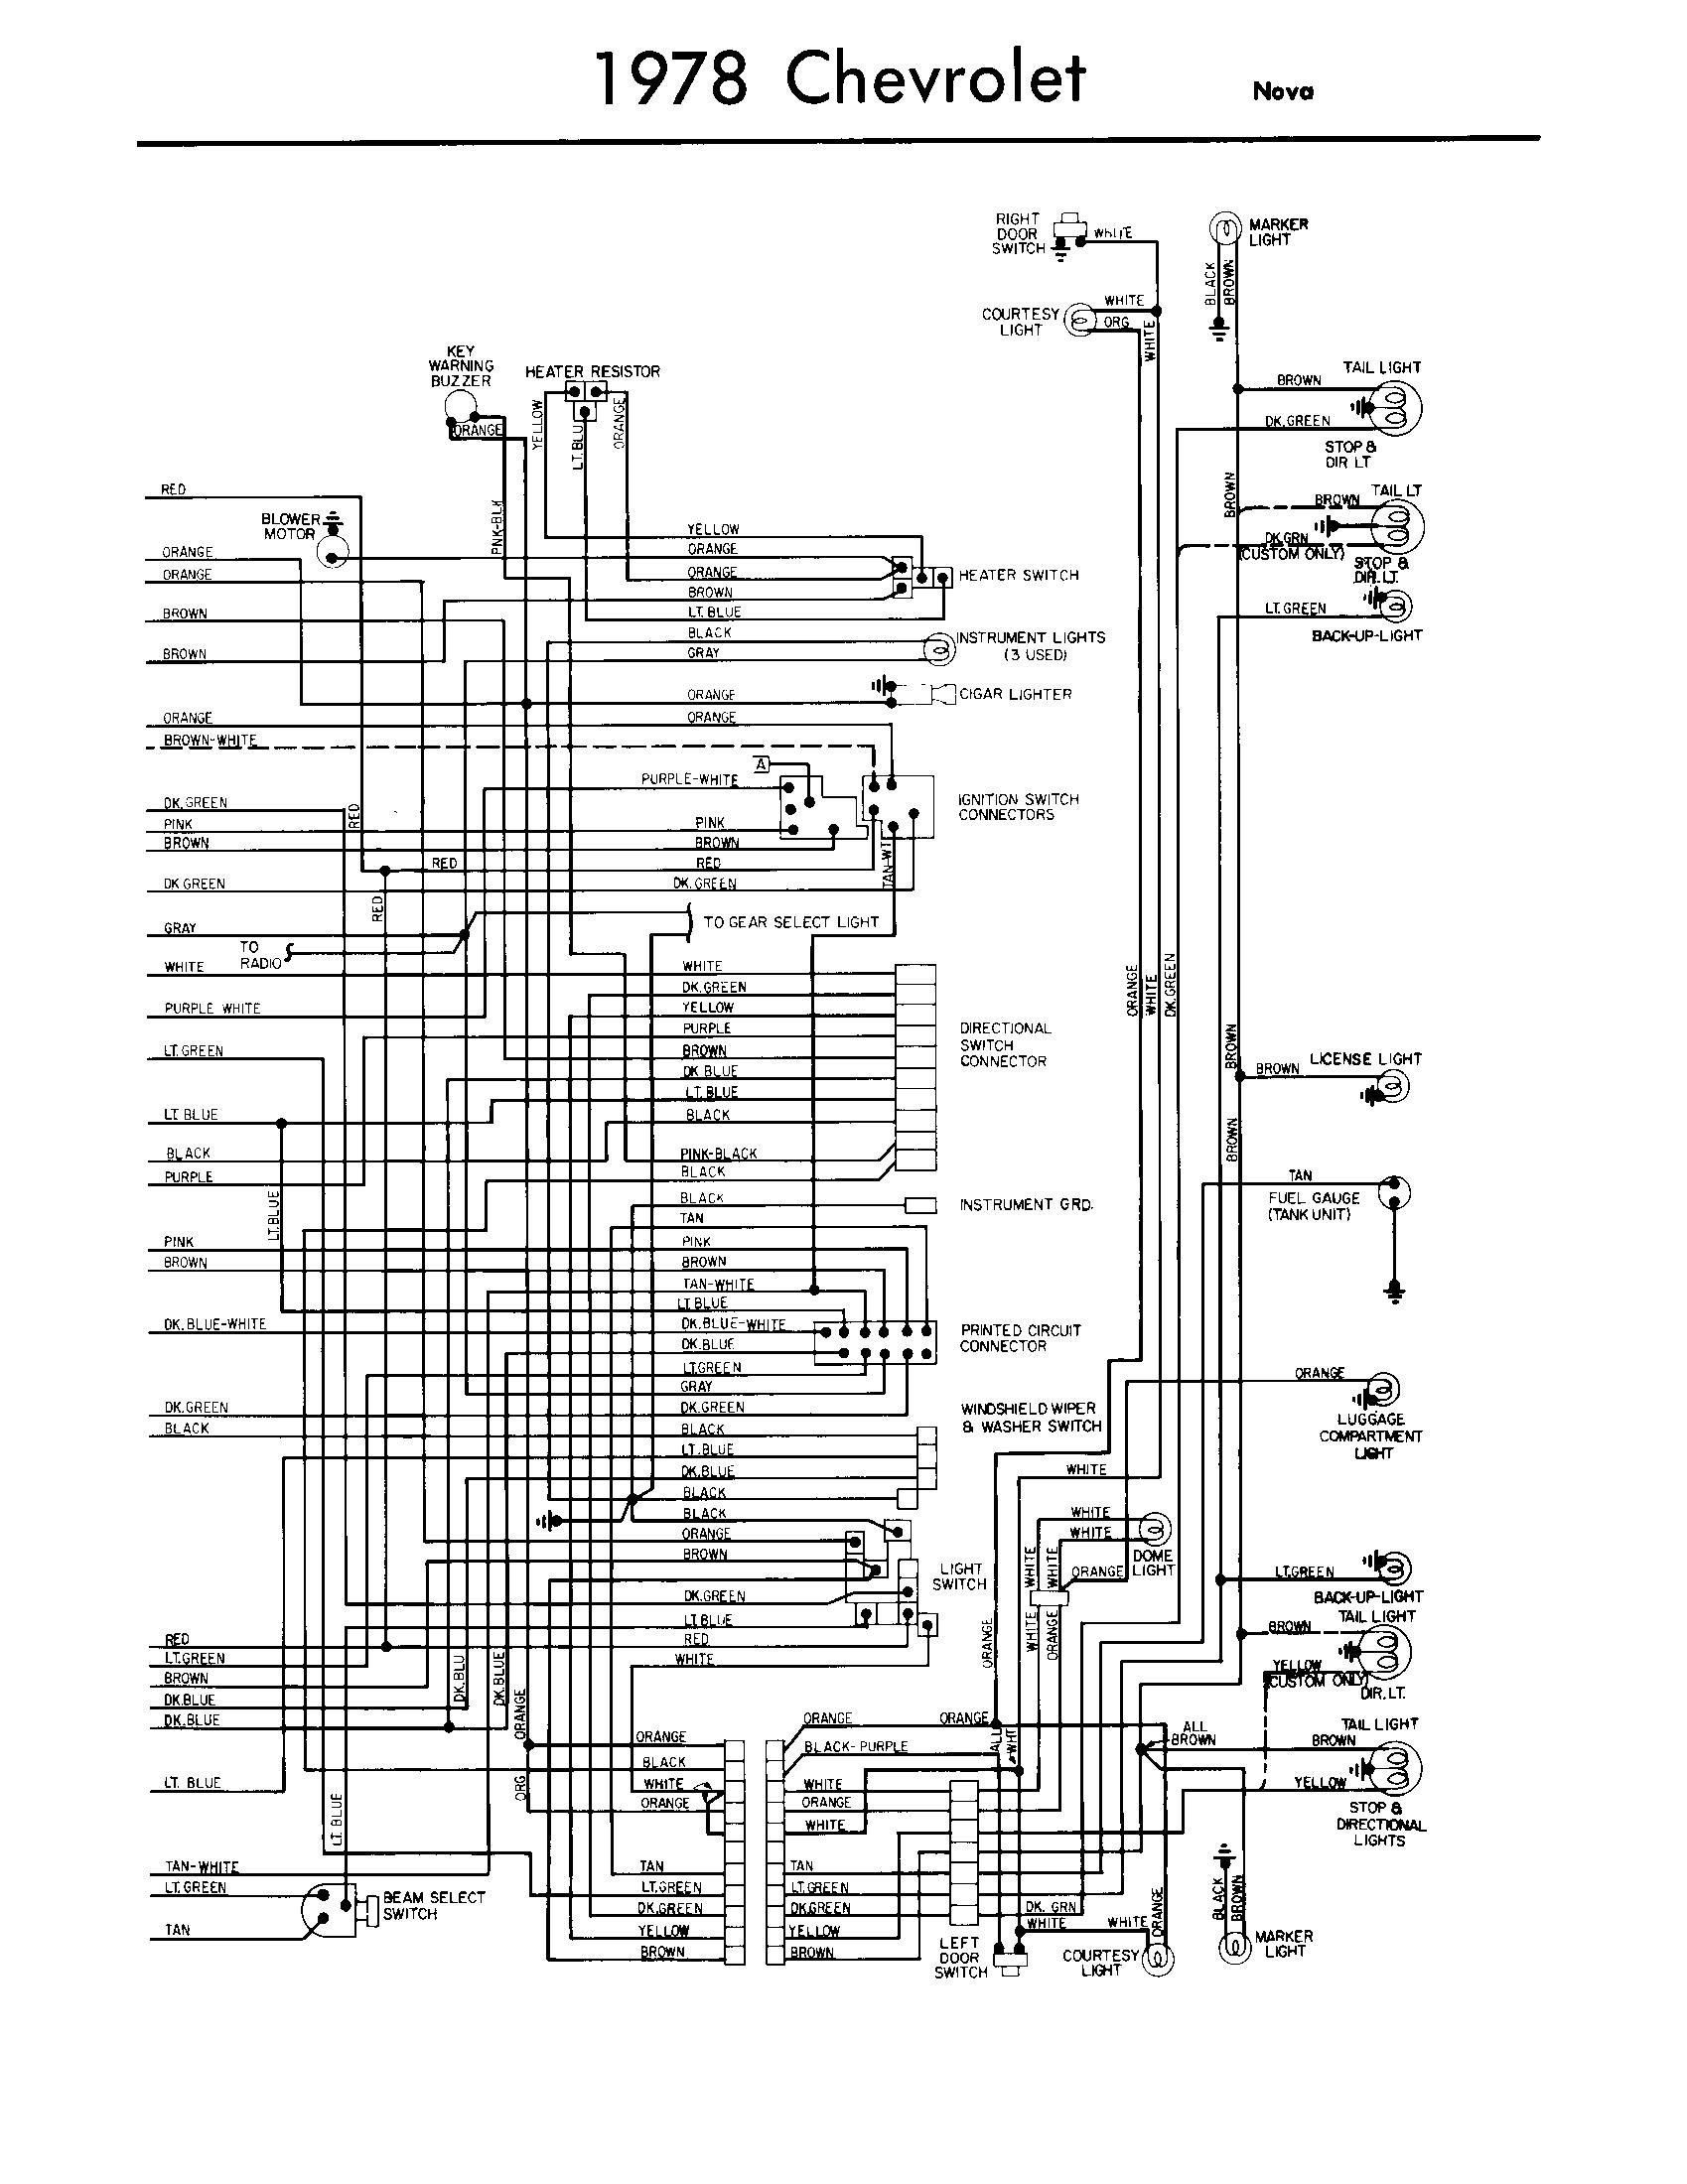 1979 chevy corvette wiring schematic php free download mesmerizing rh pinterest co uk Wire Diagram for 1958 Corvette 1980 Corvette Wiring Diagram